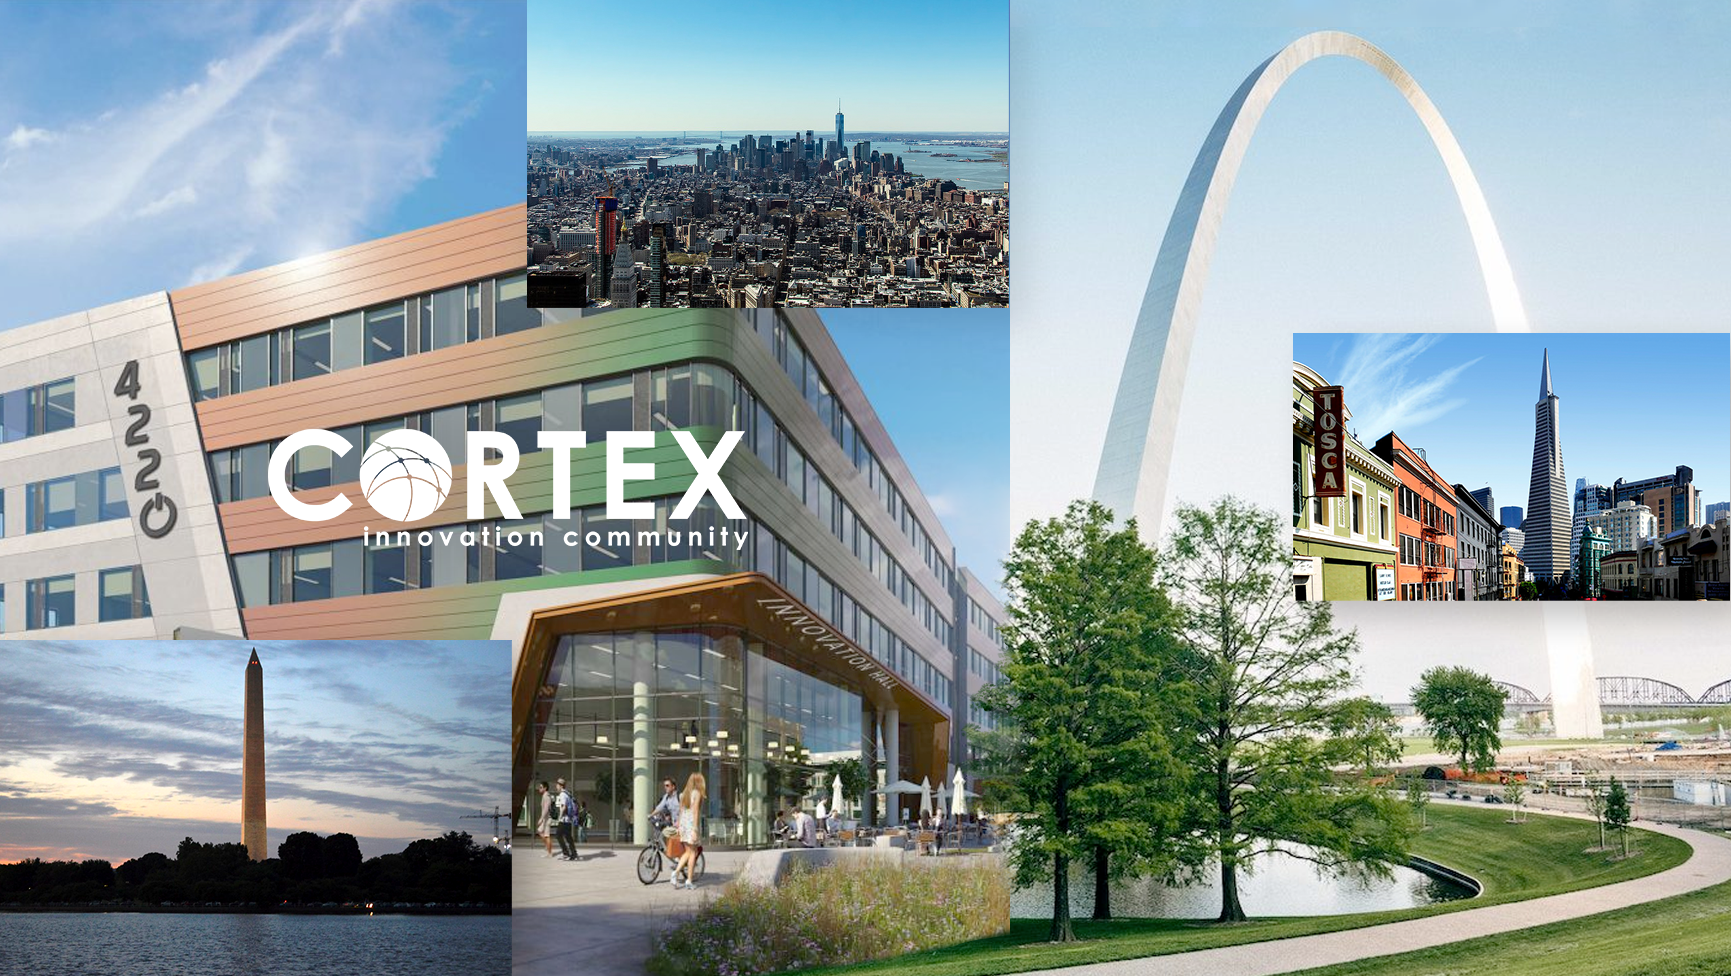 big image of the St. Louis arch and the Cortex building in St. Louis, with floating images of other city skylines with New York, San Francisco & Washington D.C.